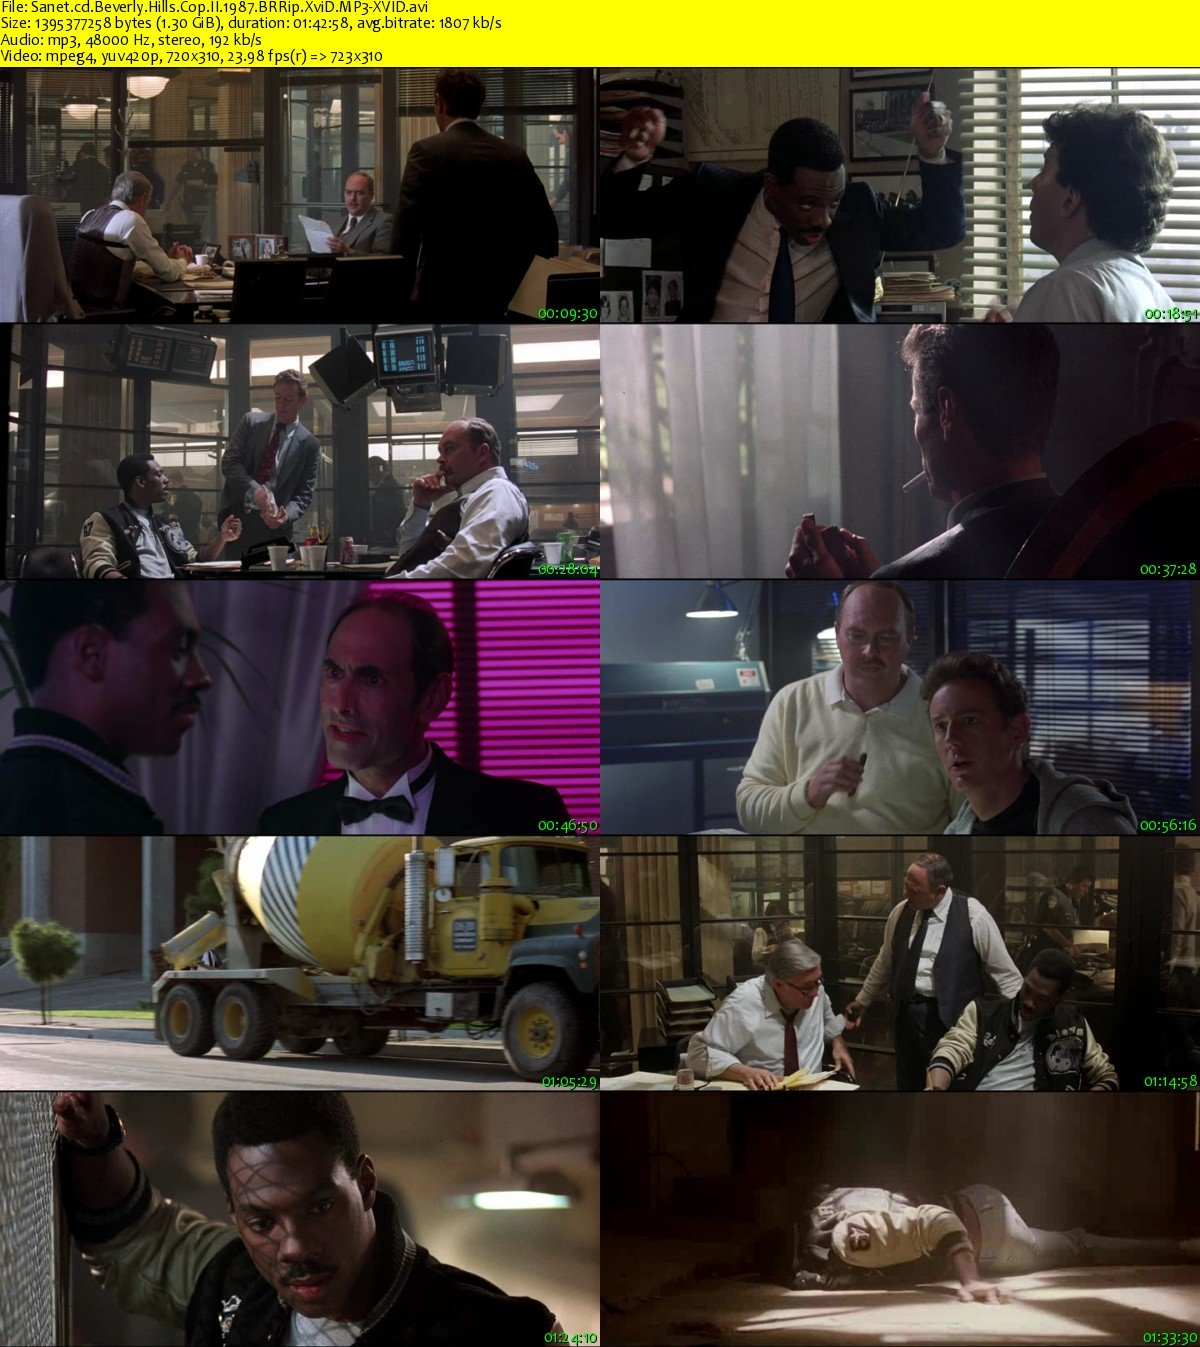 Download Beverly Hills Cop Ii 1987 Brrip Xvid Mp3 Xvid Softarchive